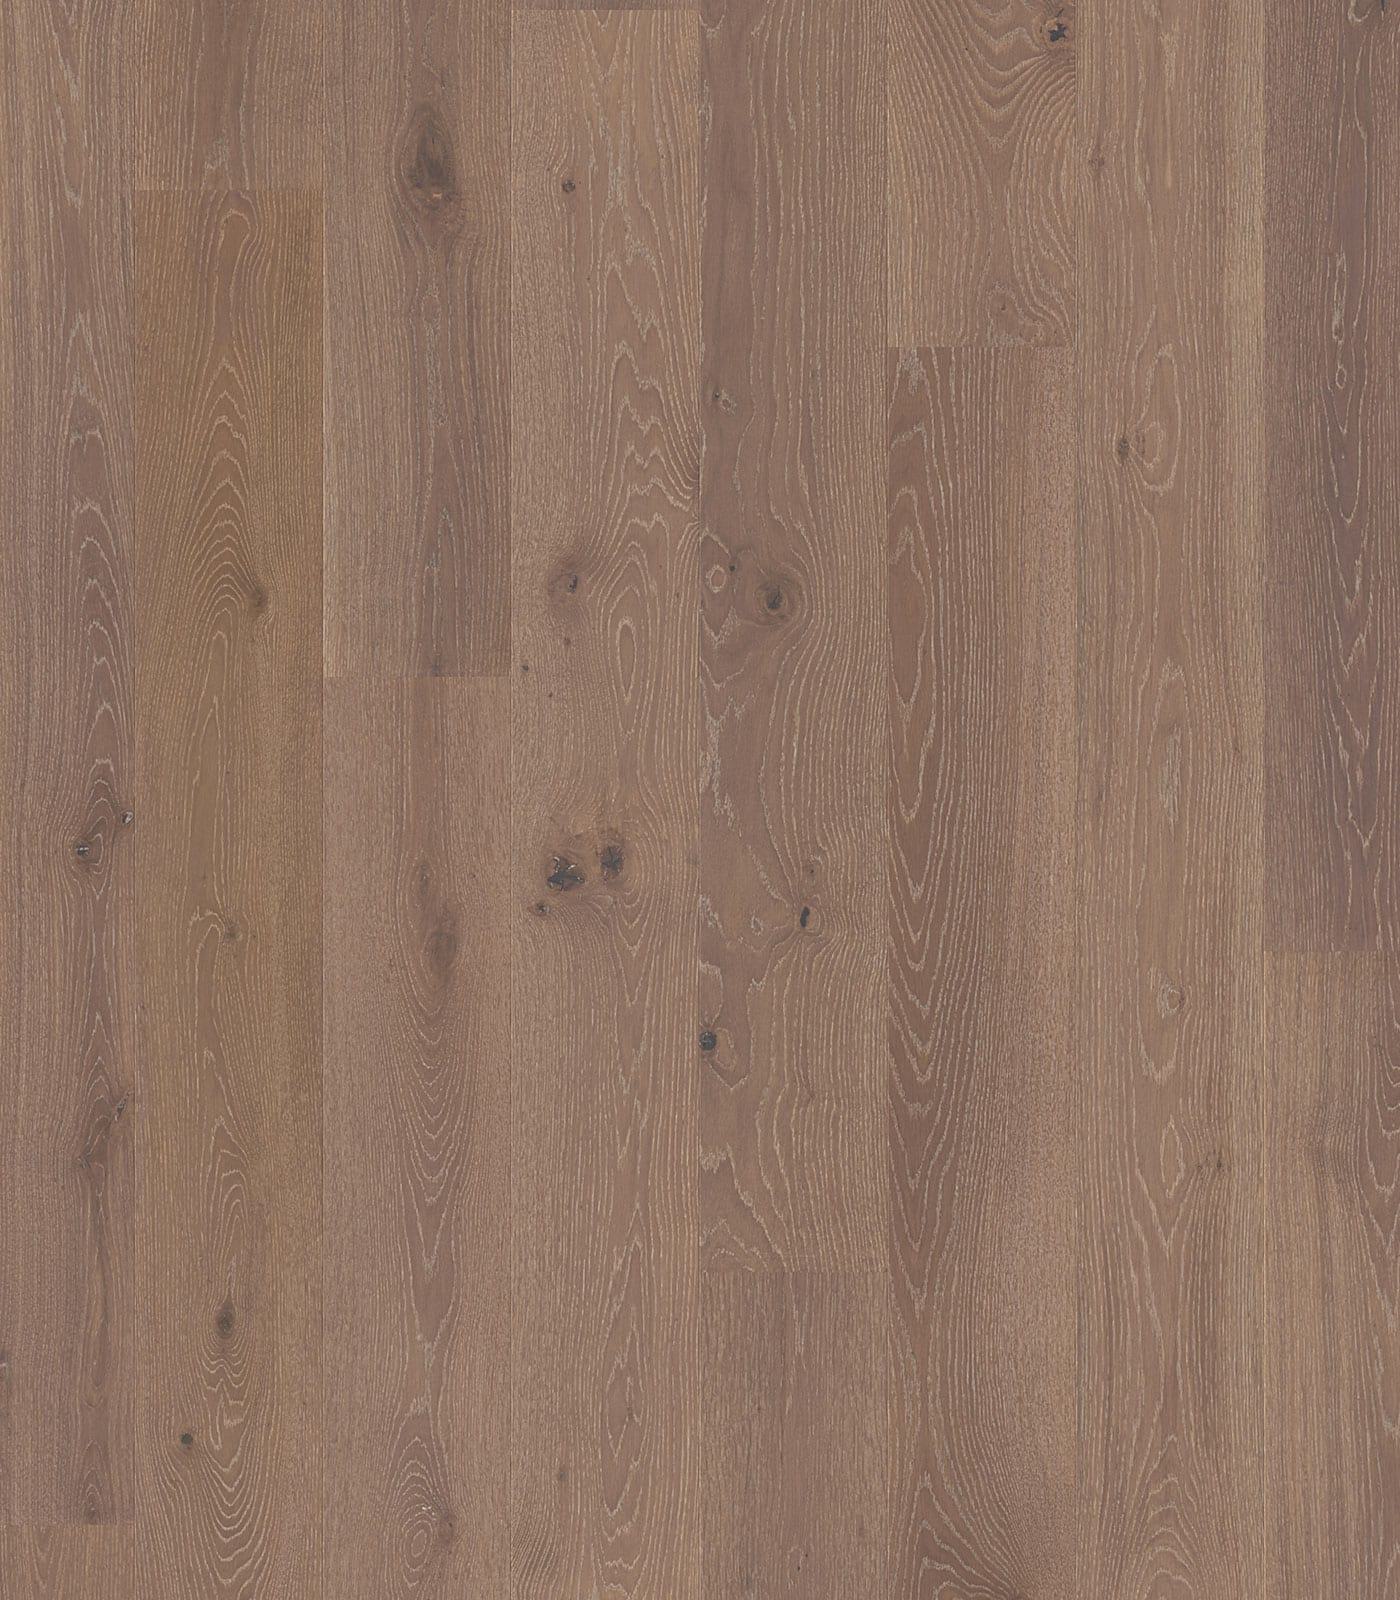 Fusion-Colors Collection-European Oak Floors-flat